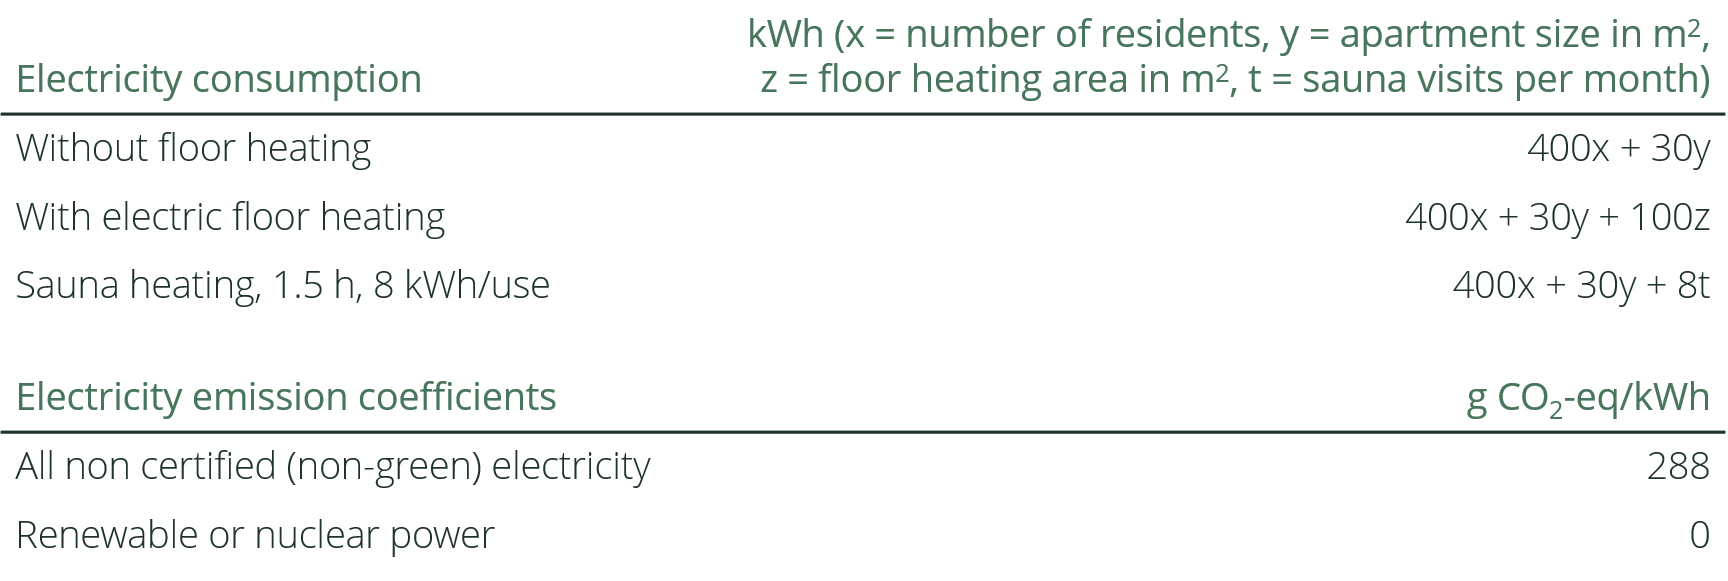 Table describing how electricity consumption has been calculated as well as the greenhouse gas emissions from different types of electricity sources.